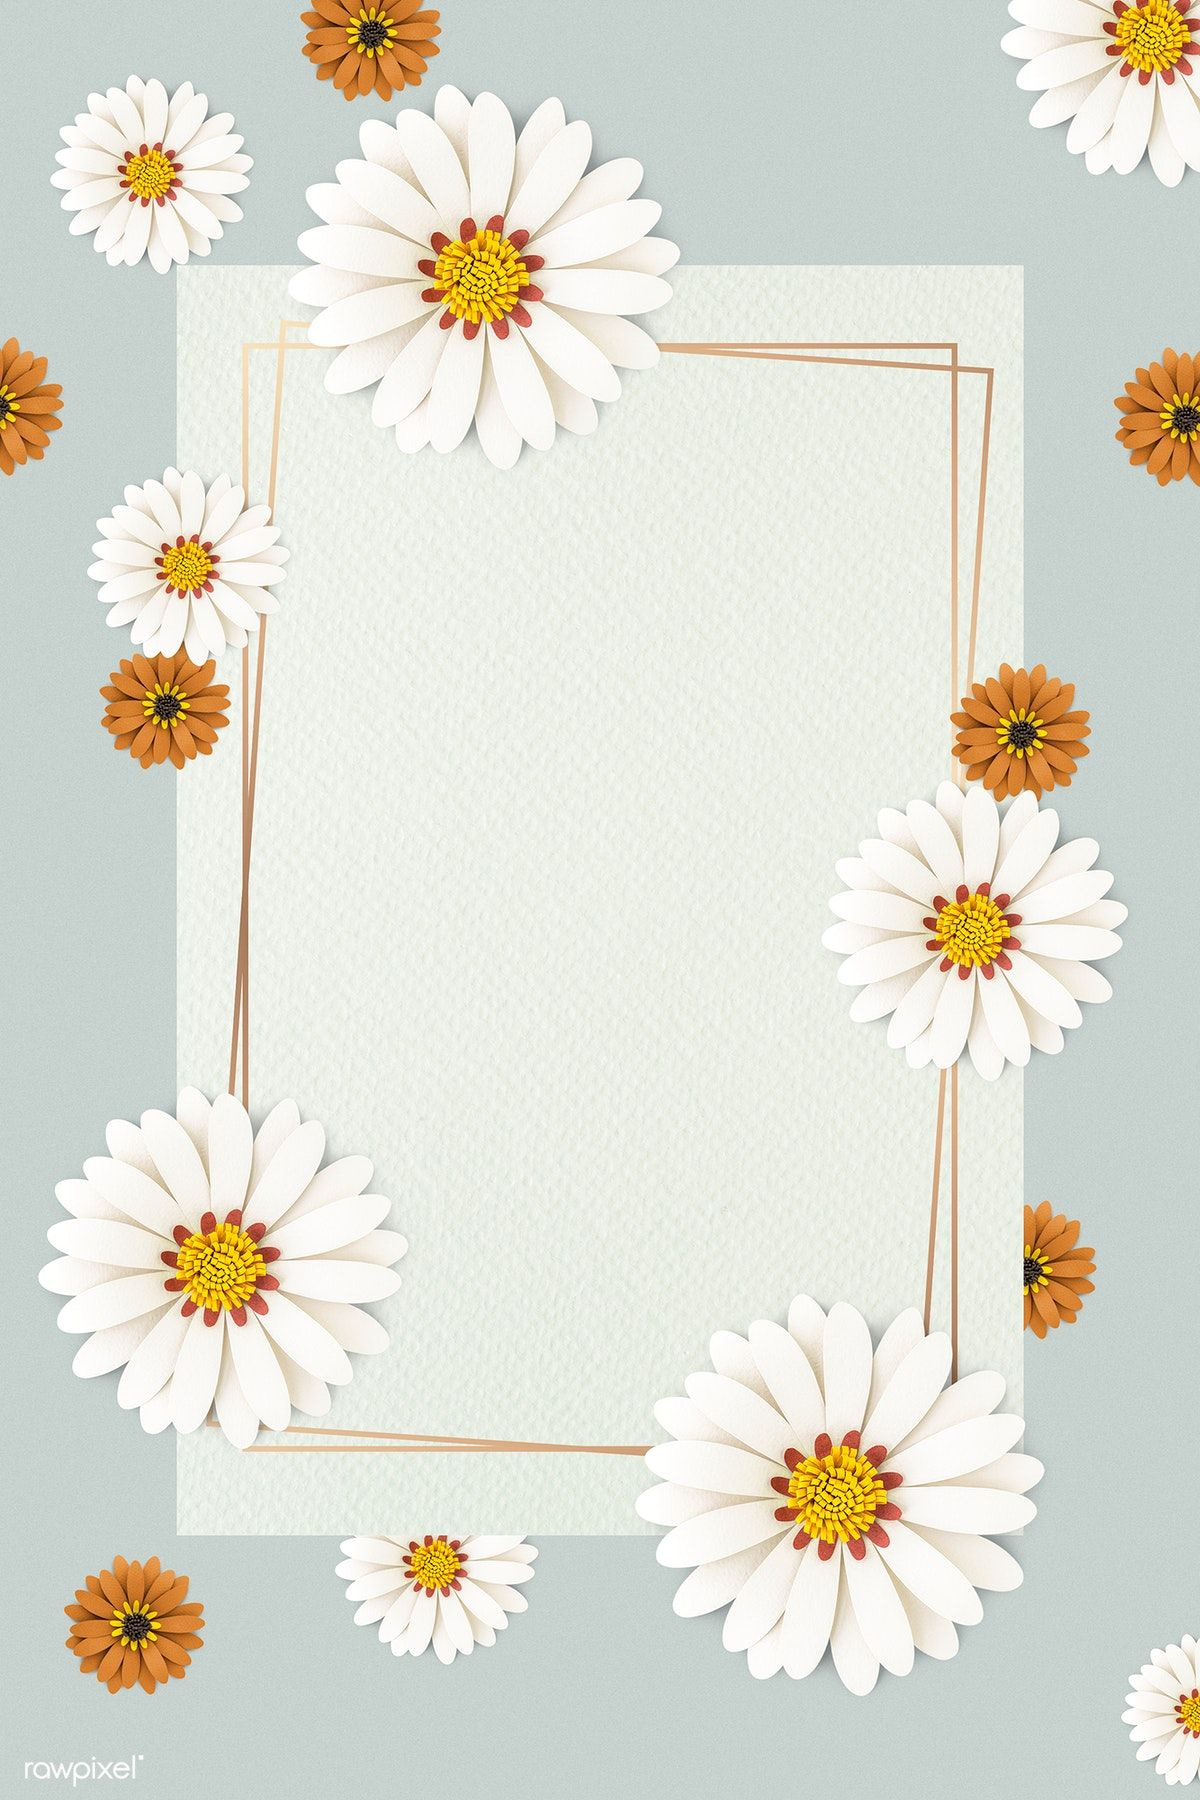 Download premium psd of White paper craft daisy flower on light blue